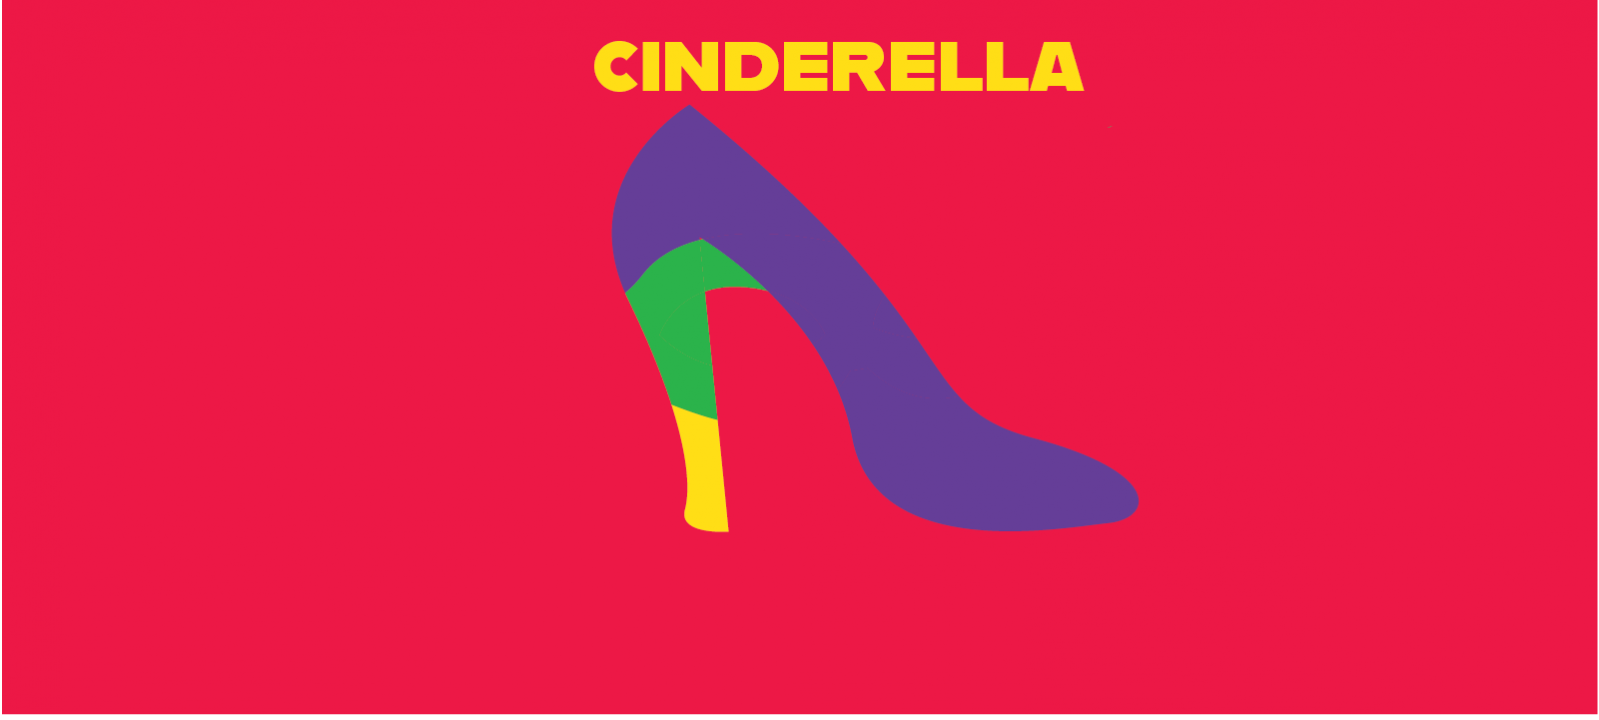 Loyola Opera Theatre presents Massenet's Cendrillon: Fri. Jan 18 at 7:30 p.m. and Sun. Jan 20 at 3 p.m. Buy tickets today!